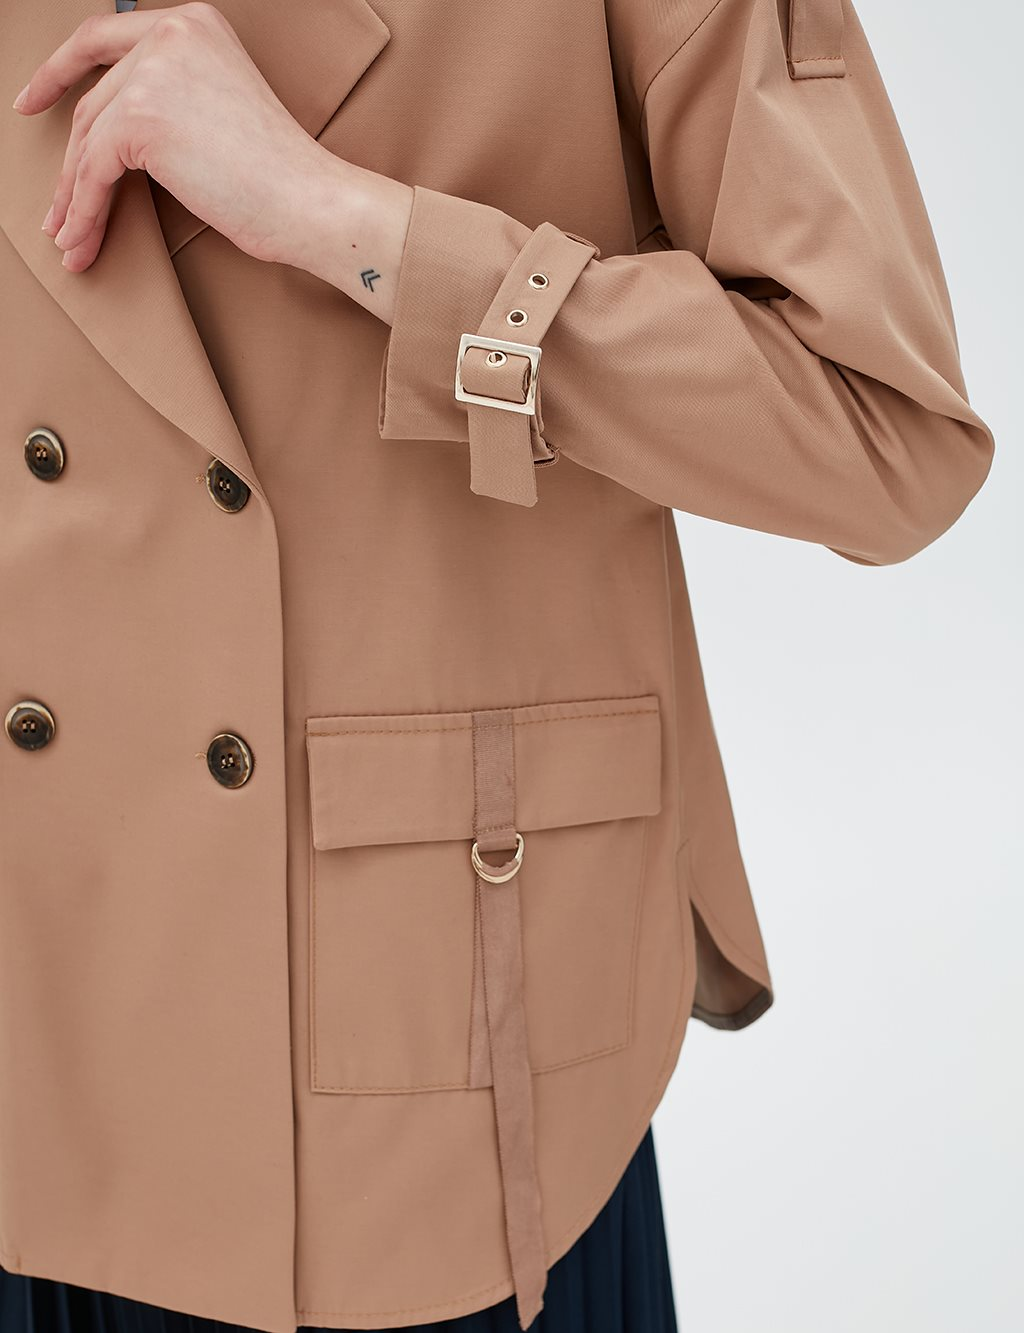 Sleeve Detailed Jacket B20 13011 Beige